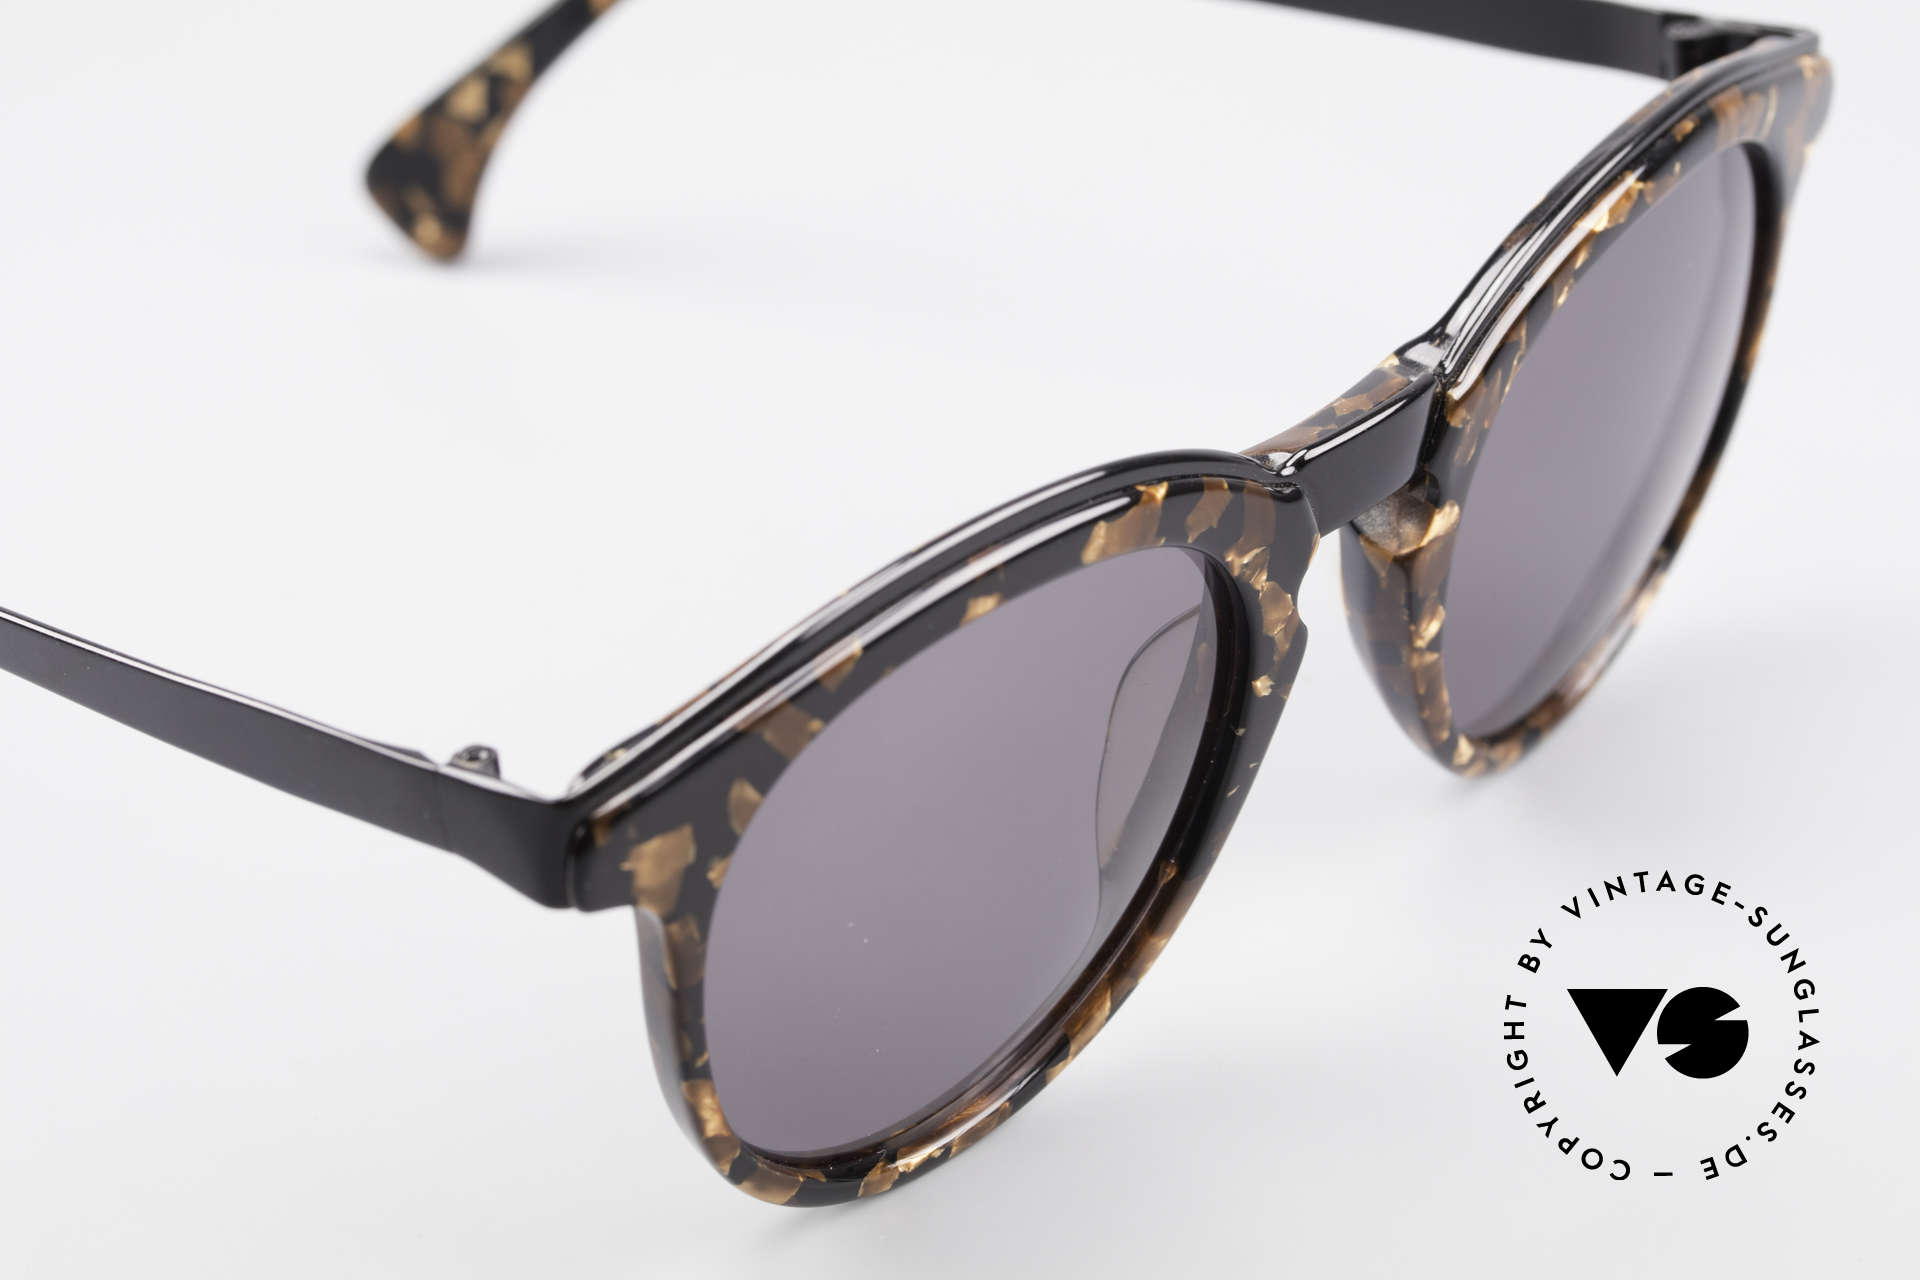 Alain Mikli 626 / 514 Rare Old 80's Panto Sunglasses, unworn (like all our rare vintage A. Mikli sunglasses), Made for Men and Women